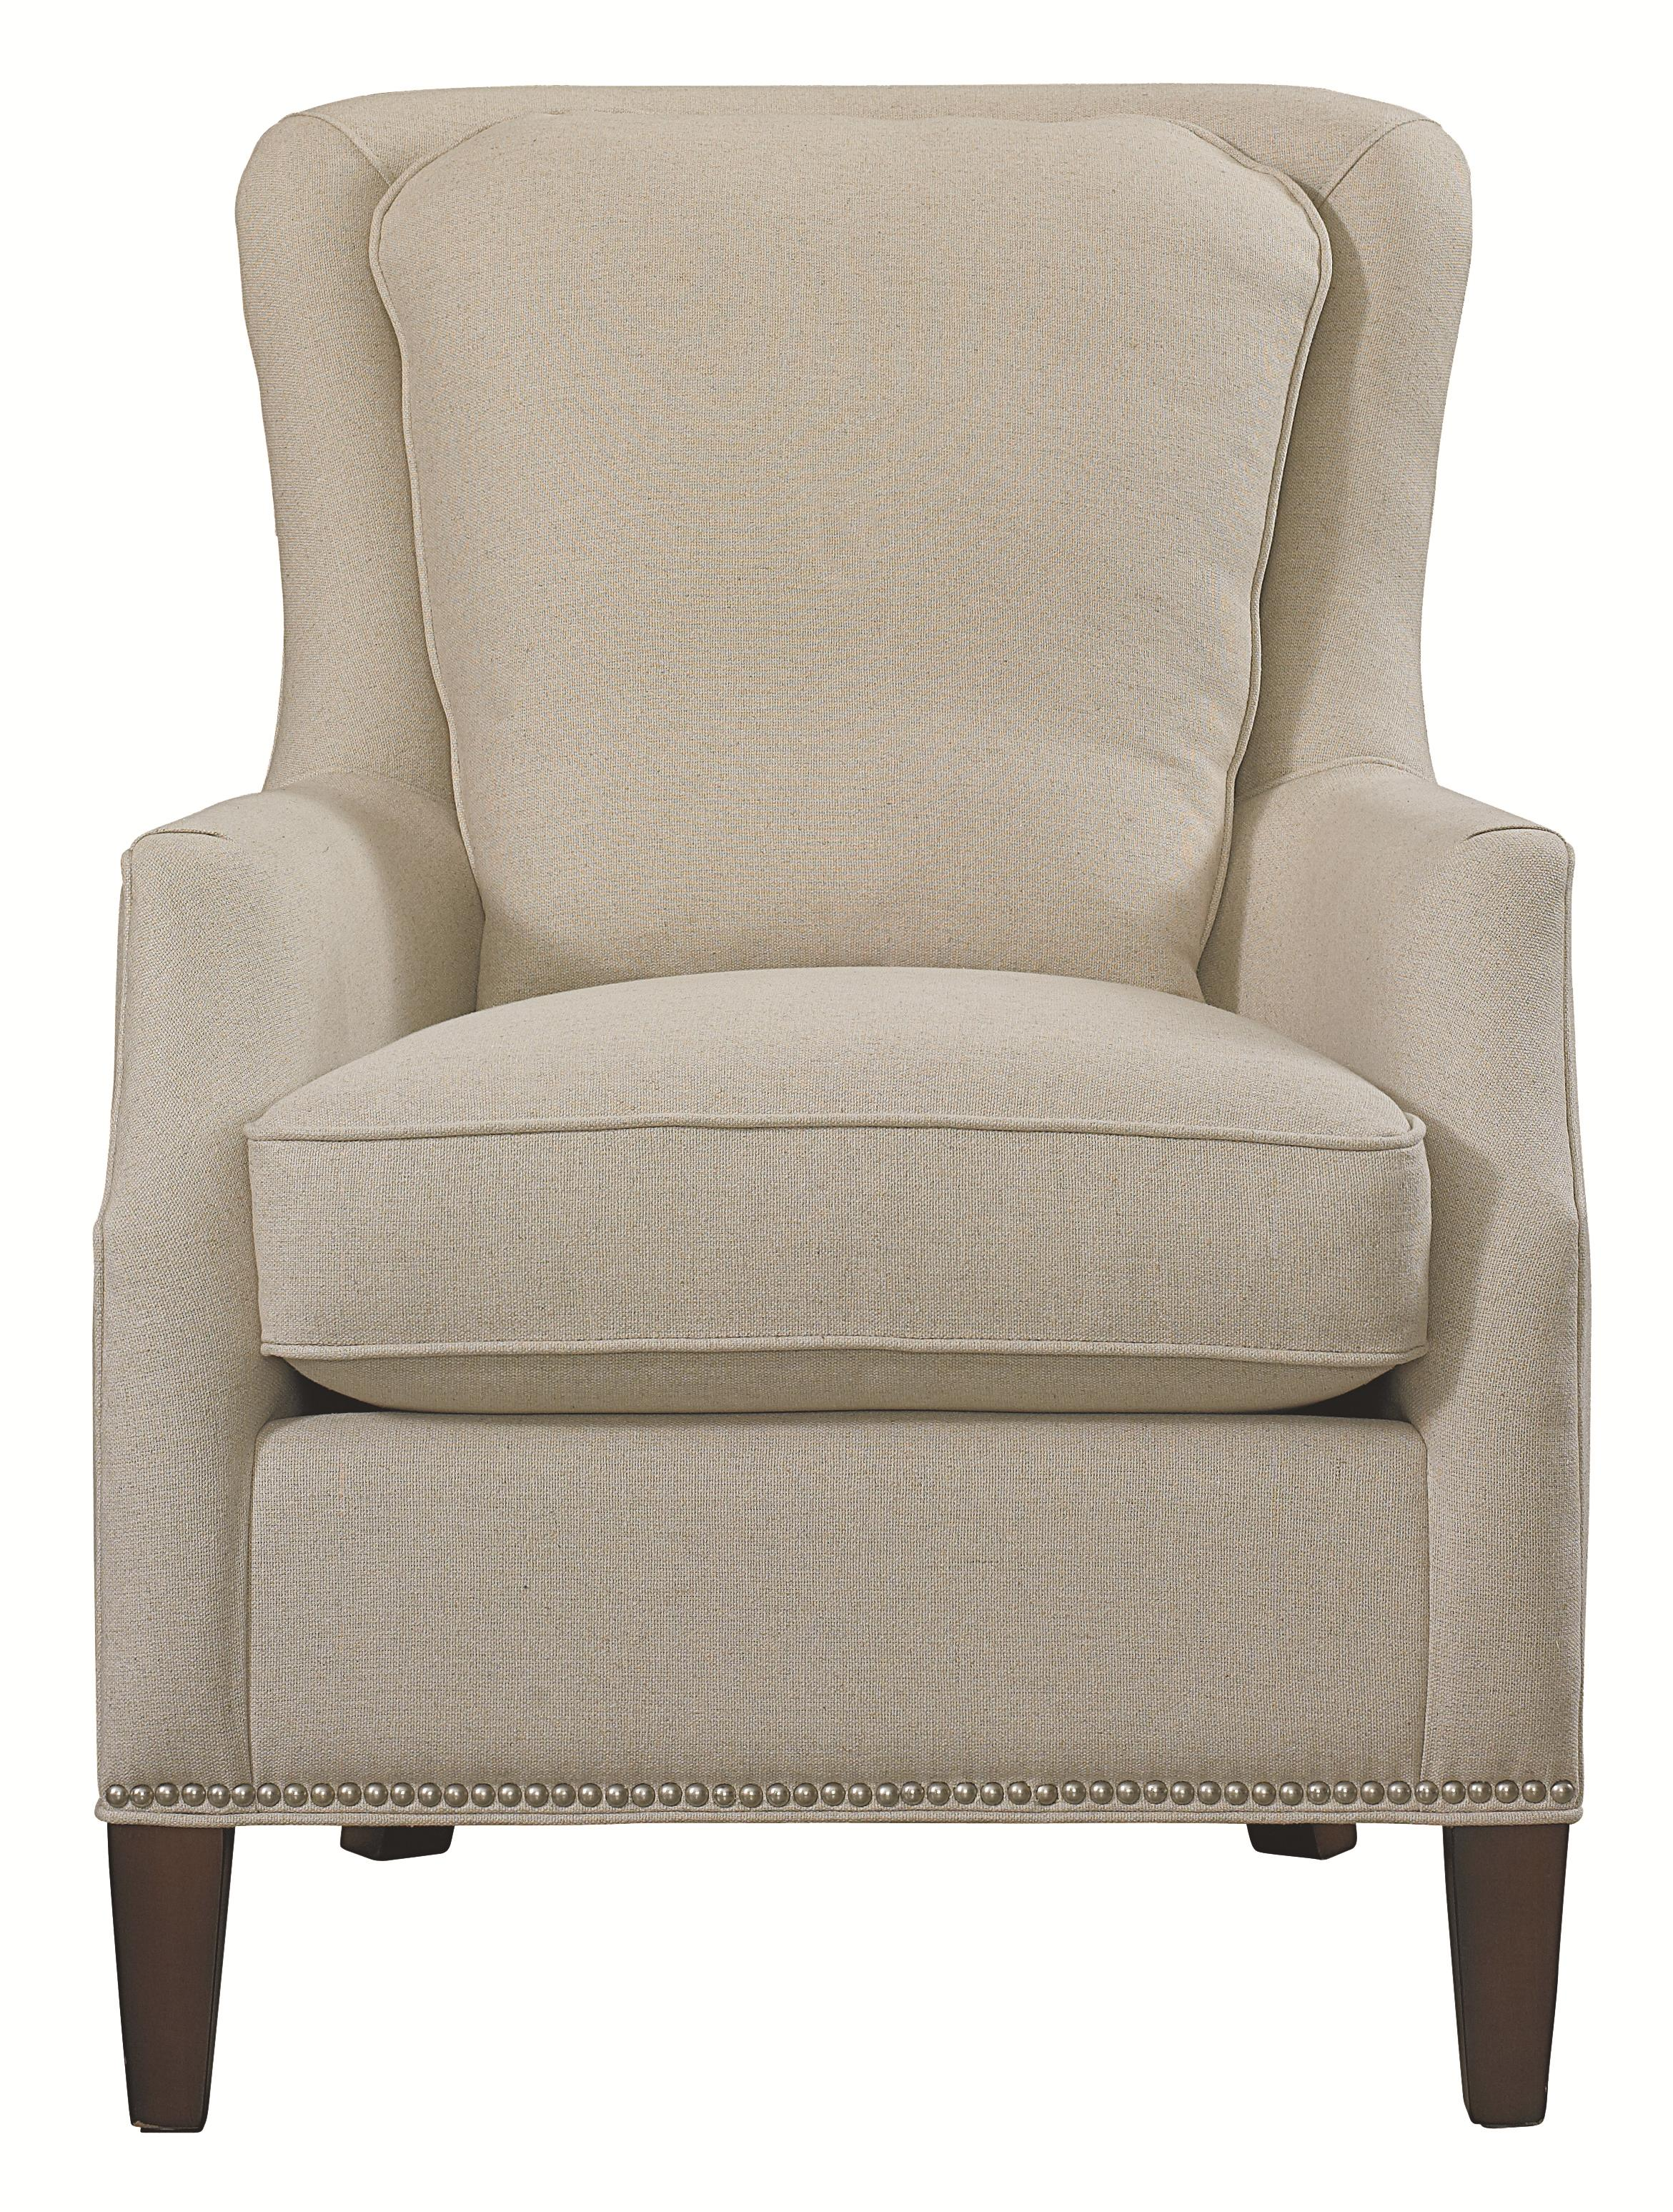 Bassett Accent Chairs by Bassett Kent Accent Chair - Item Number: 1951-02